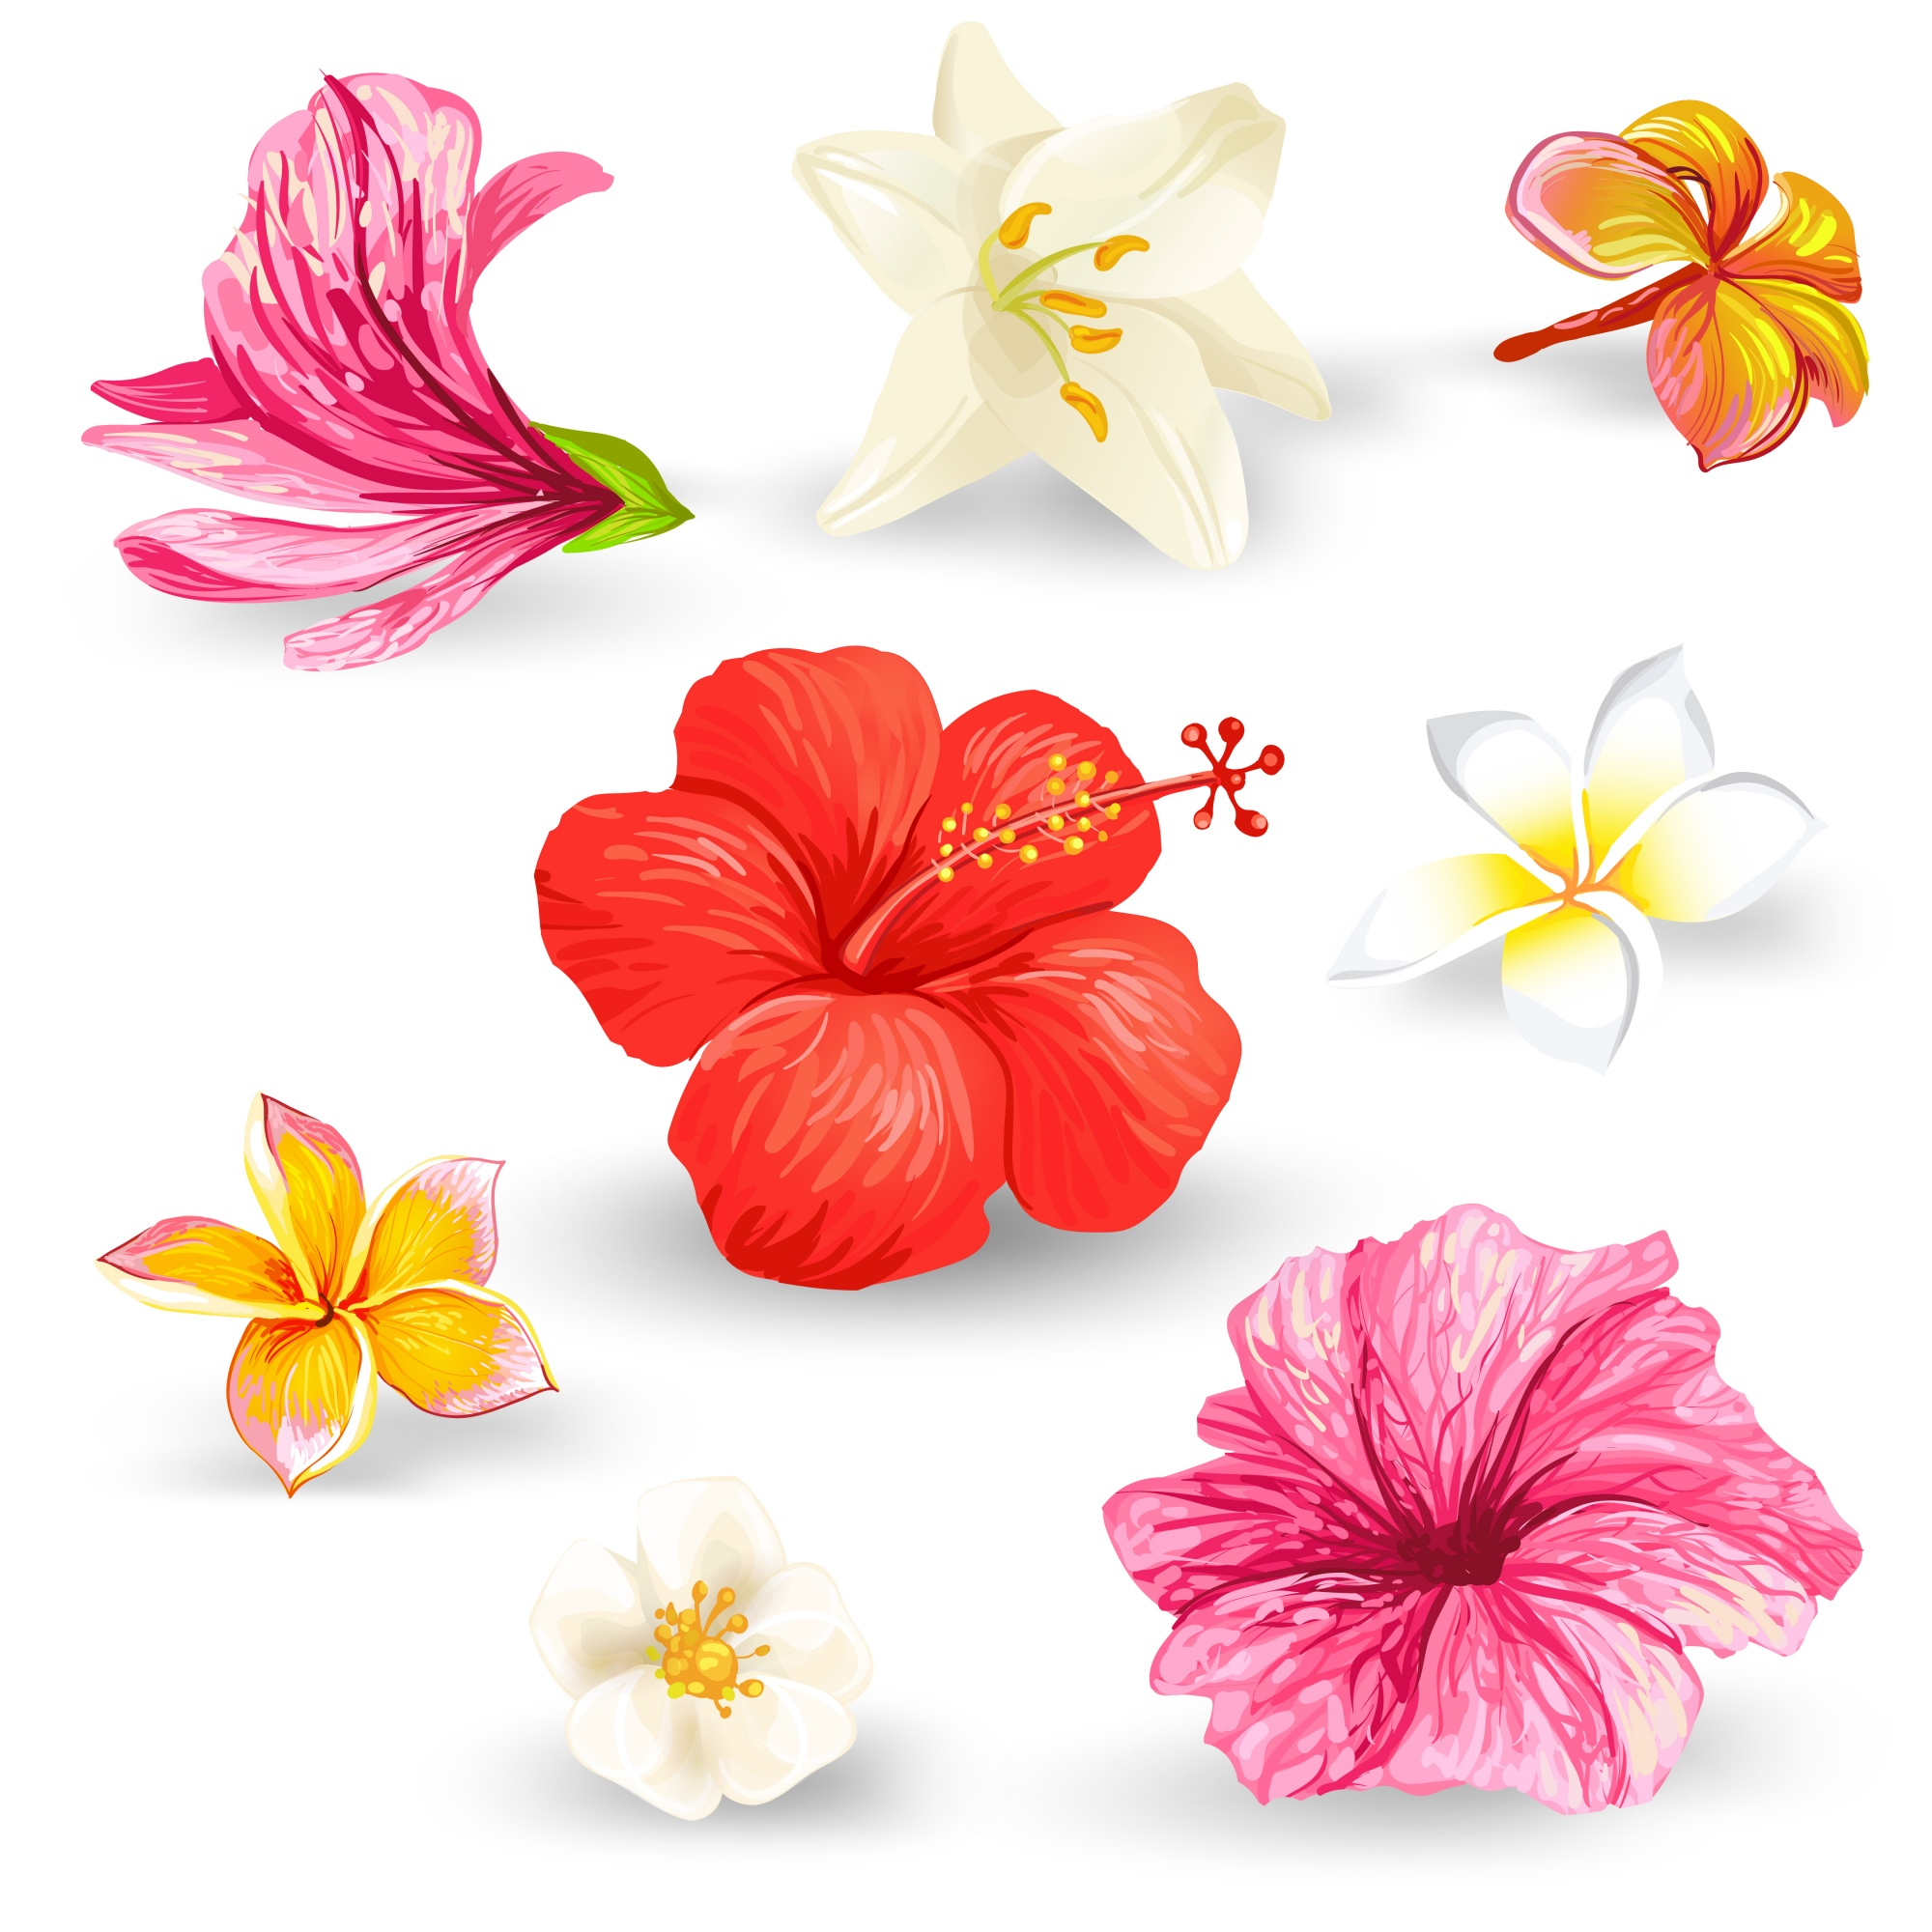 hibiscus vectors  photos and psd files free download divider clip art math divider clip art diamonds